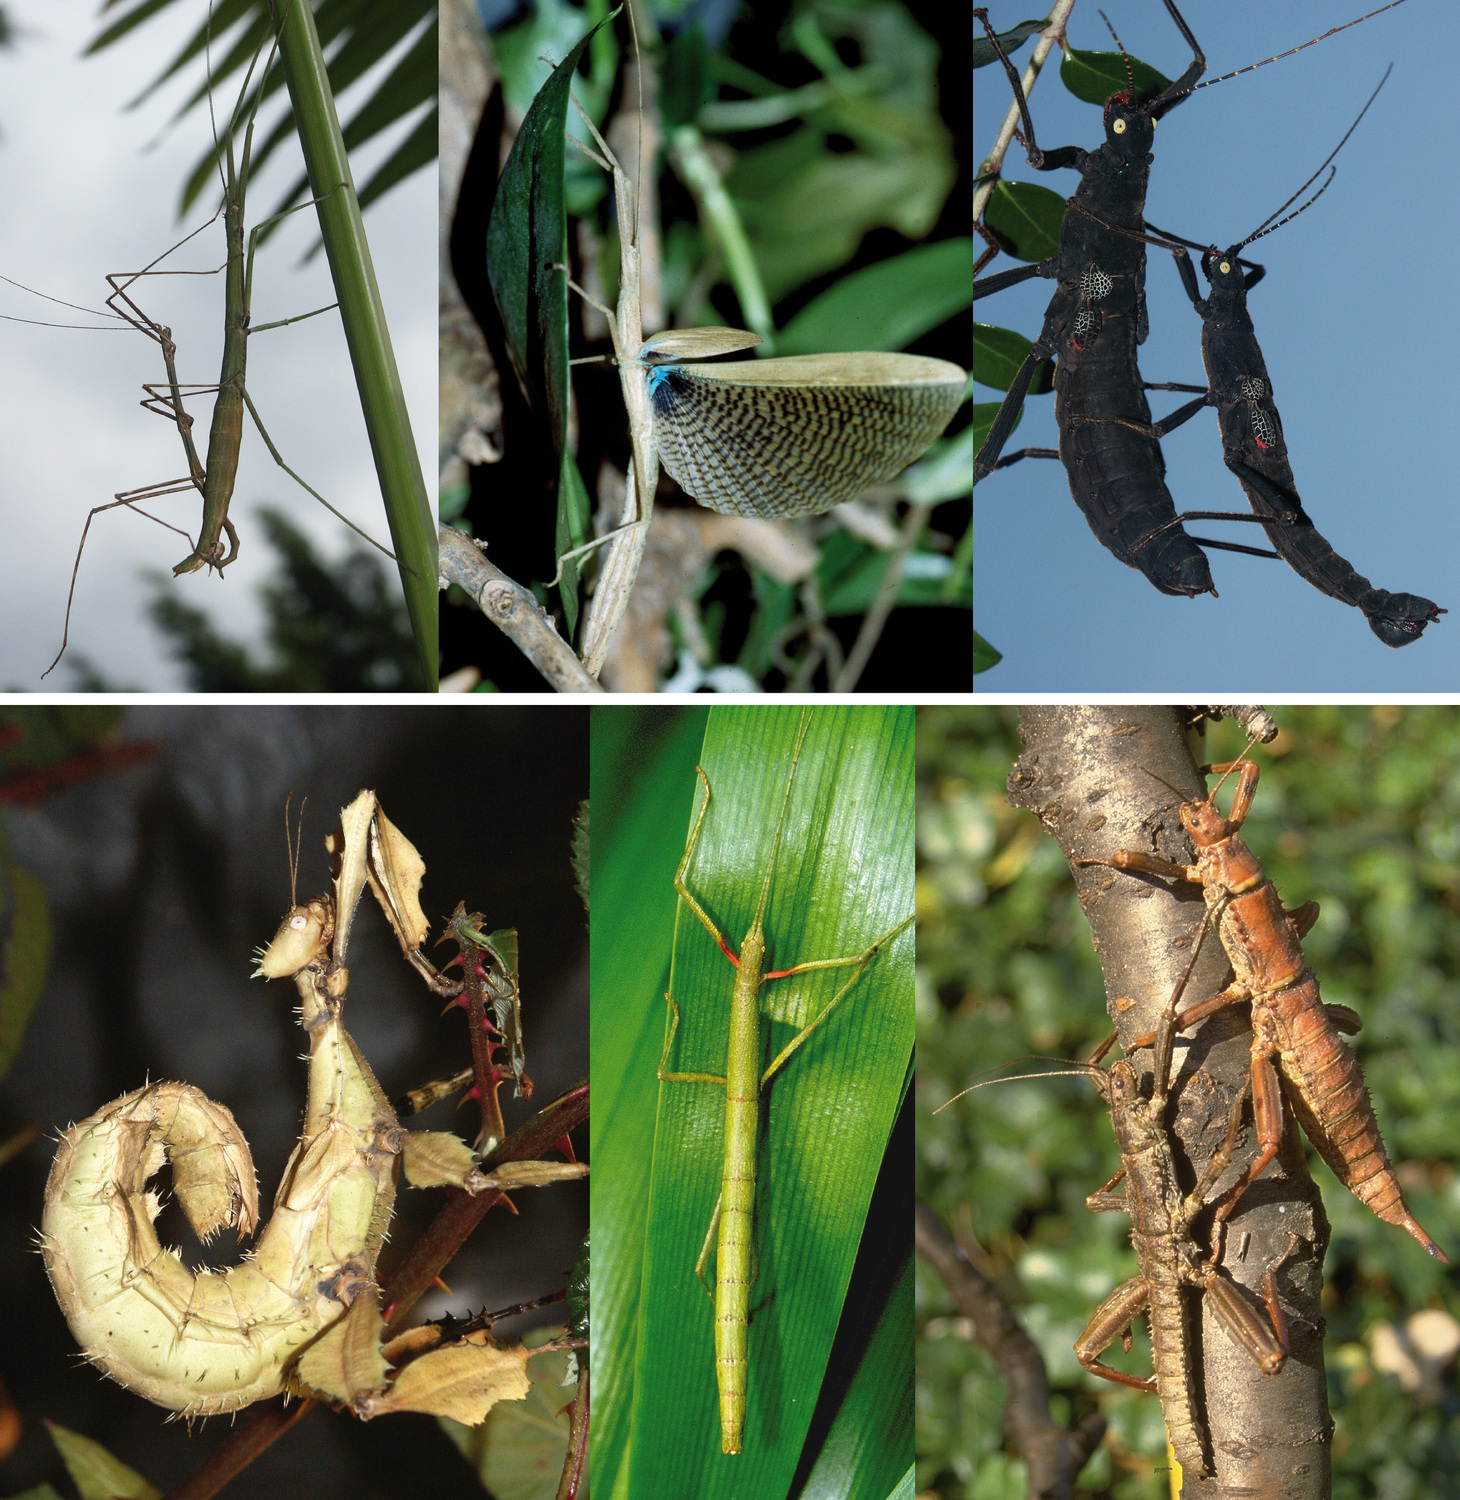 Stick insect relatives: different in appearance but of the same origin. Surprisingly, New World (above) and Old World stick insects (below) form their own evolutionary lines within this insect group, as a new genomic study shows. From top left to bottom right: pair of Mexican stick insects Pseudosermyle phalangiphora, female of Metriophasma diocles from Panama, pair of Black Velvet stick insects Peruphasma schultei from Peru, female of Australian Giant Prickly stick insect Extatosoma tiaratum, female of Indian stick insect Carausius morosus, a pair of